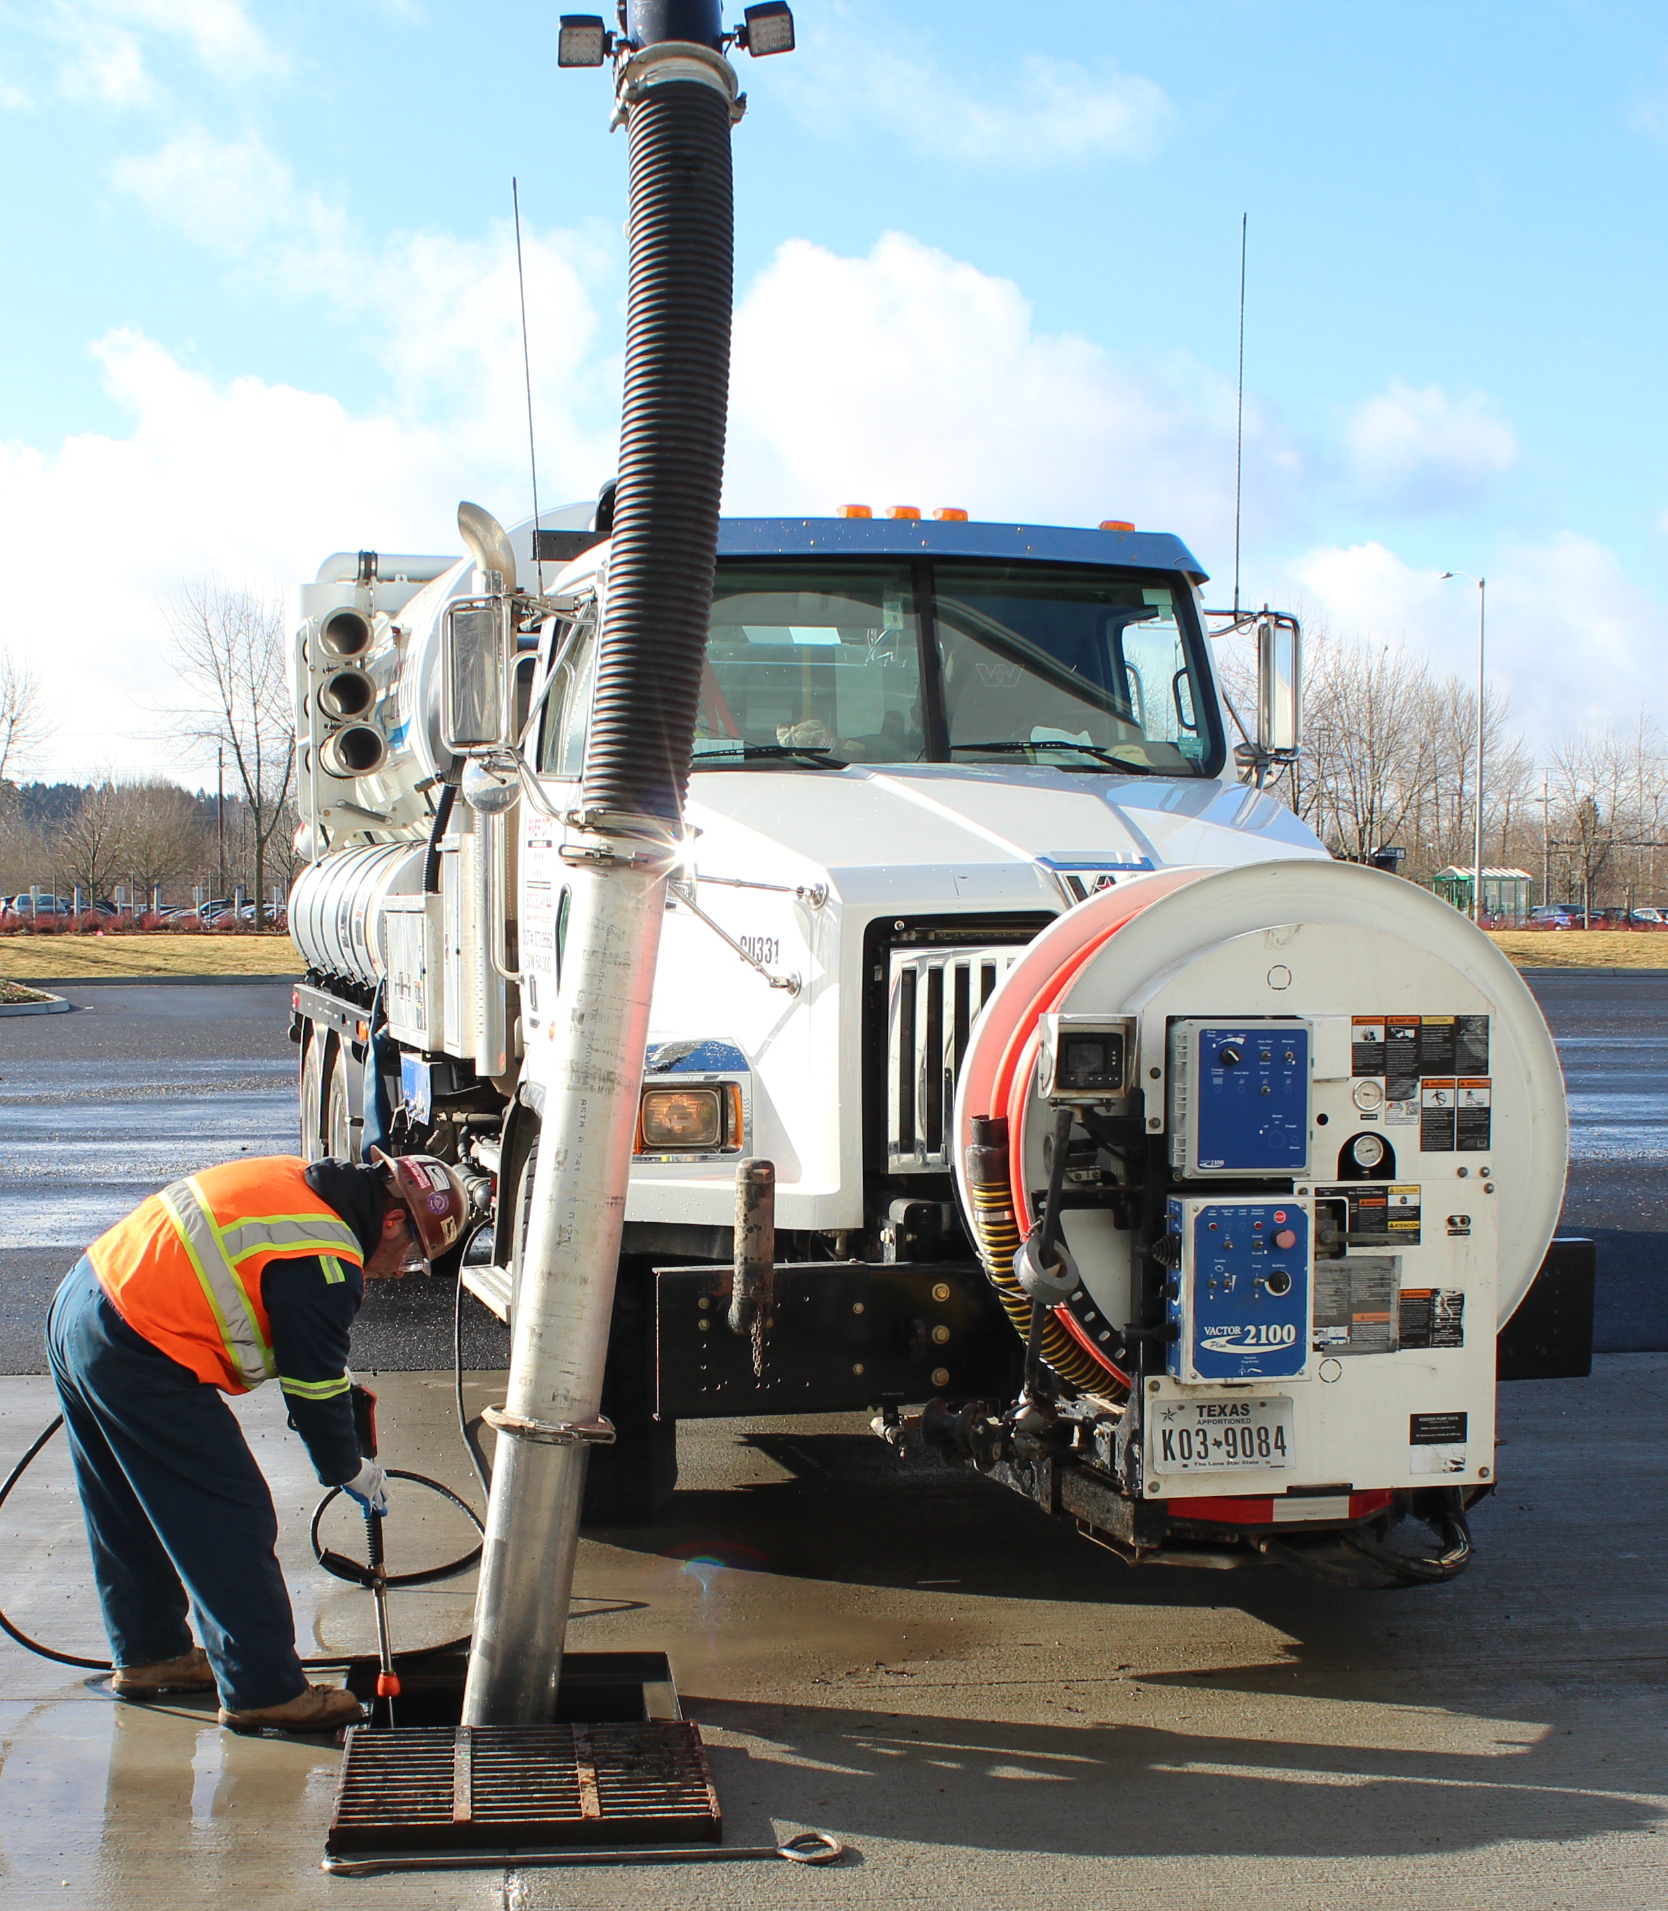 Sand, gravel, slurry, stormwater or sewer - we pump it, we jet it